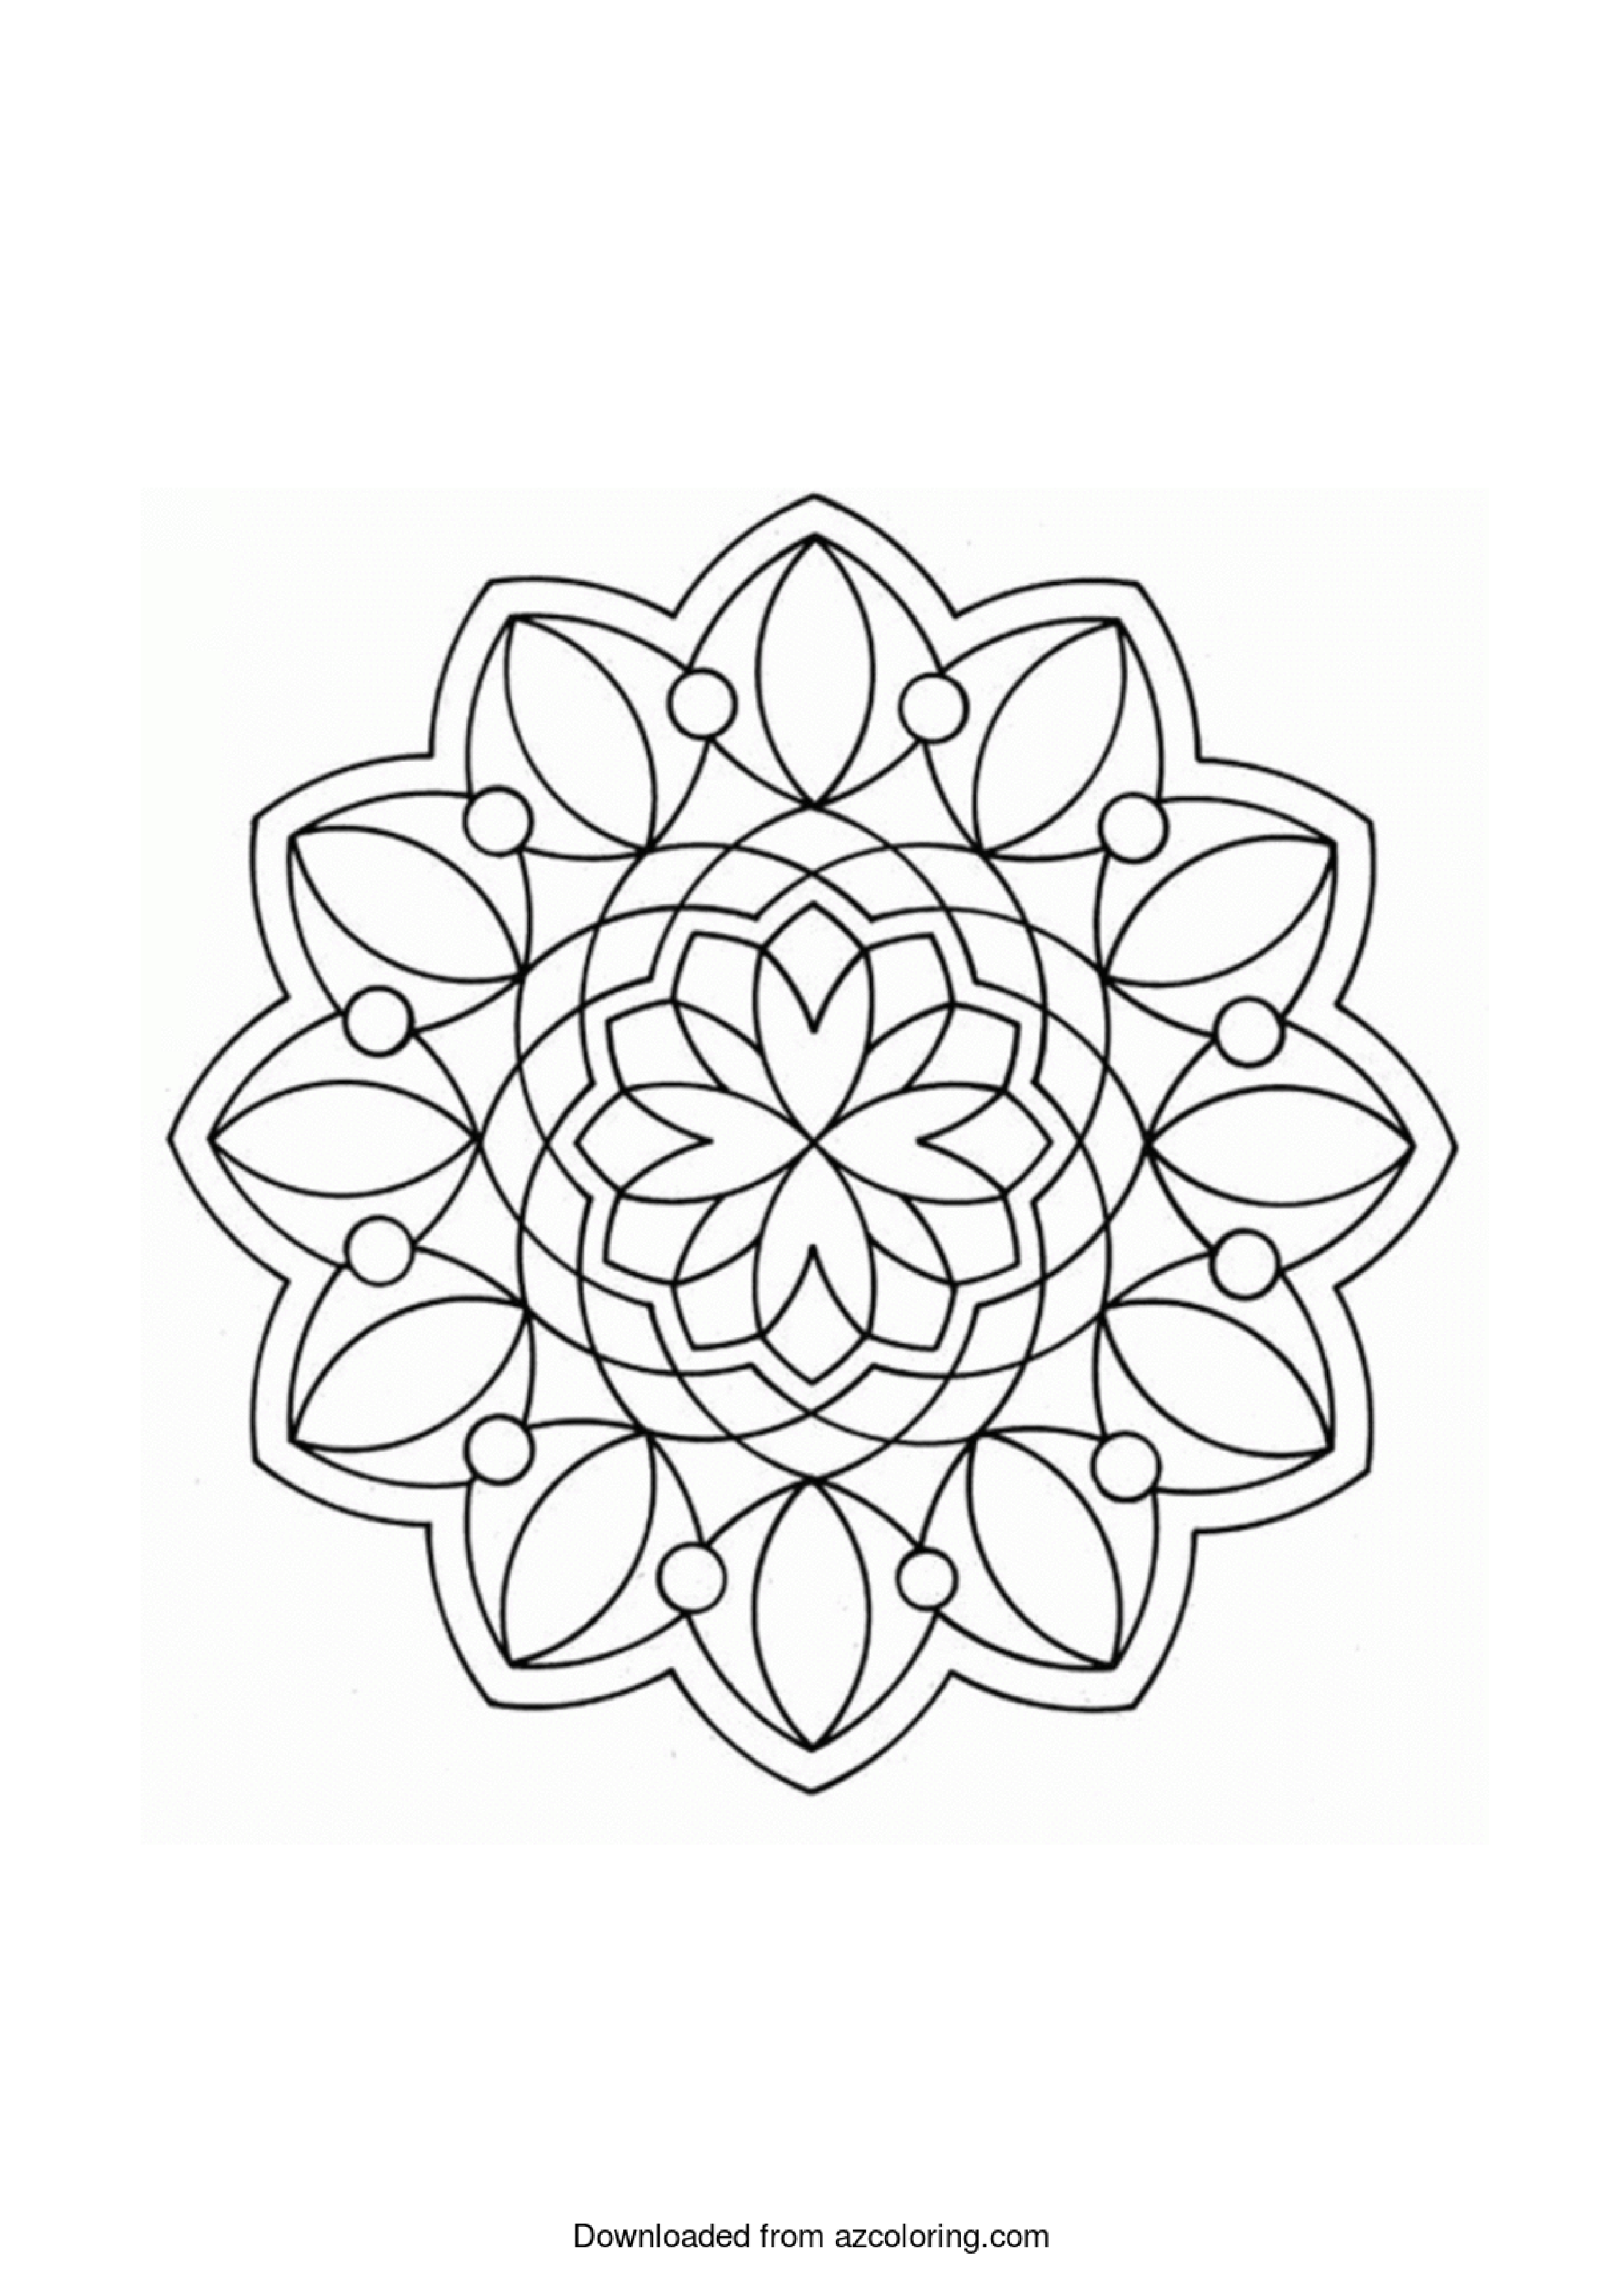 Simple Geometric Coloring Page Main Image